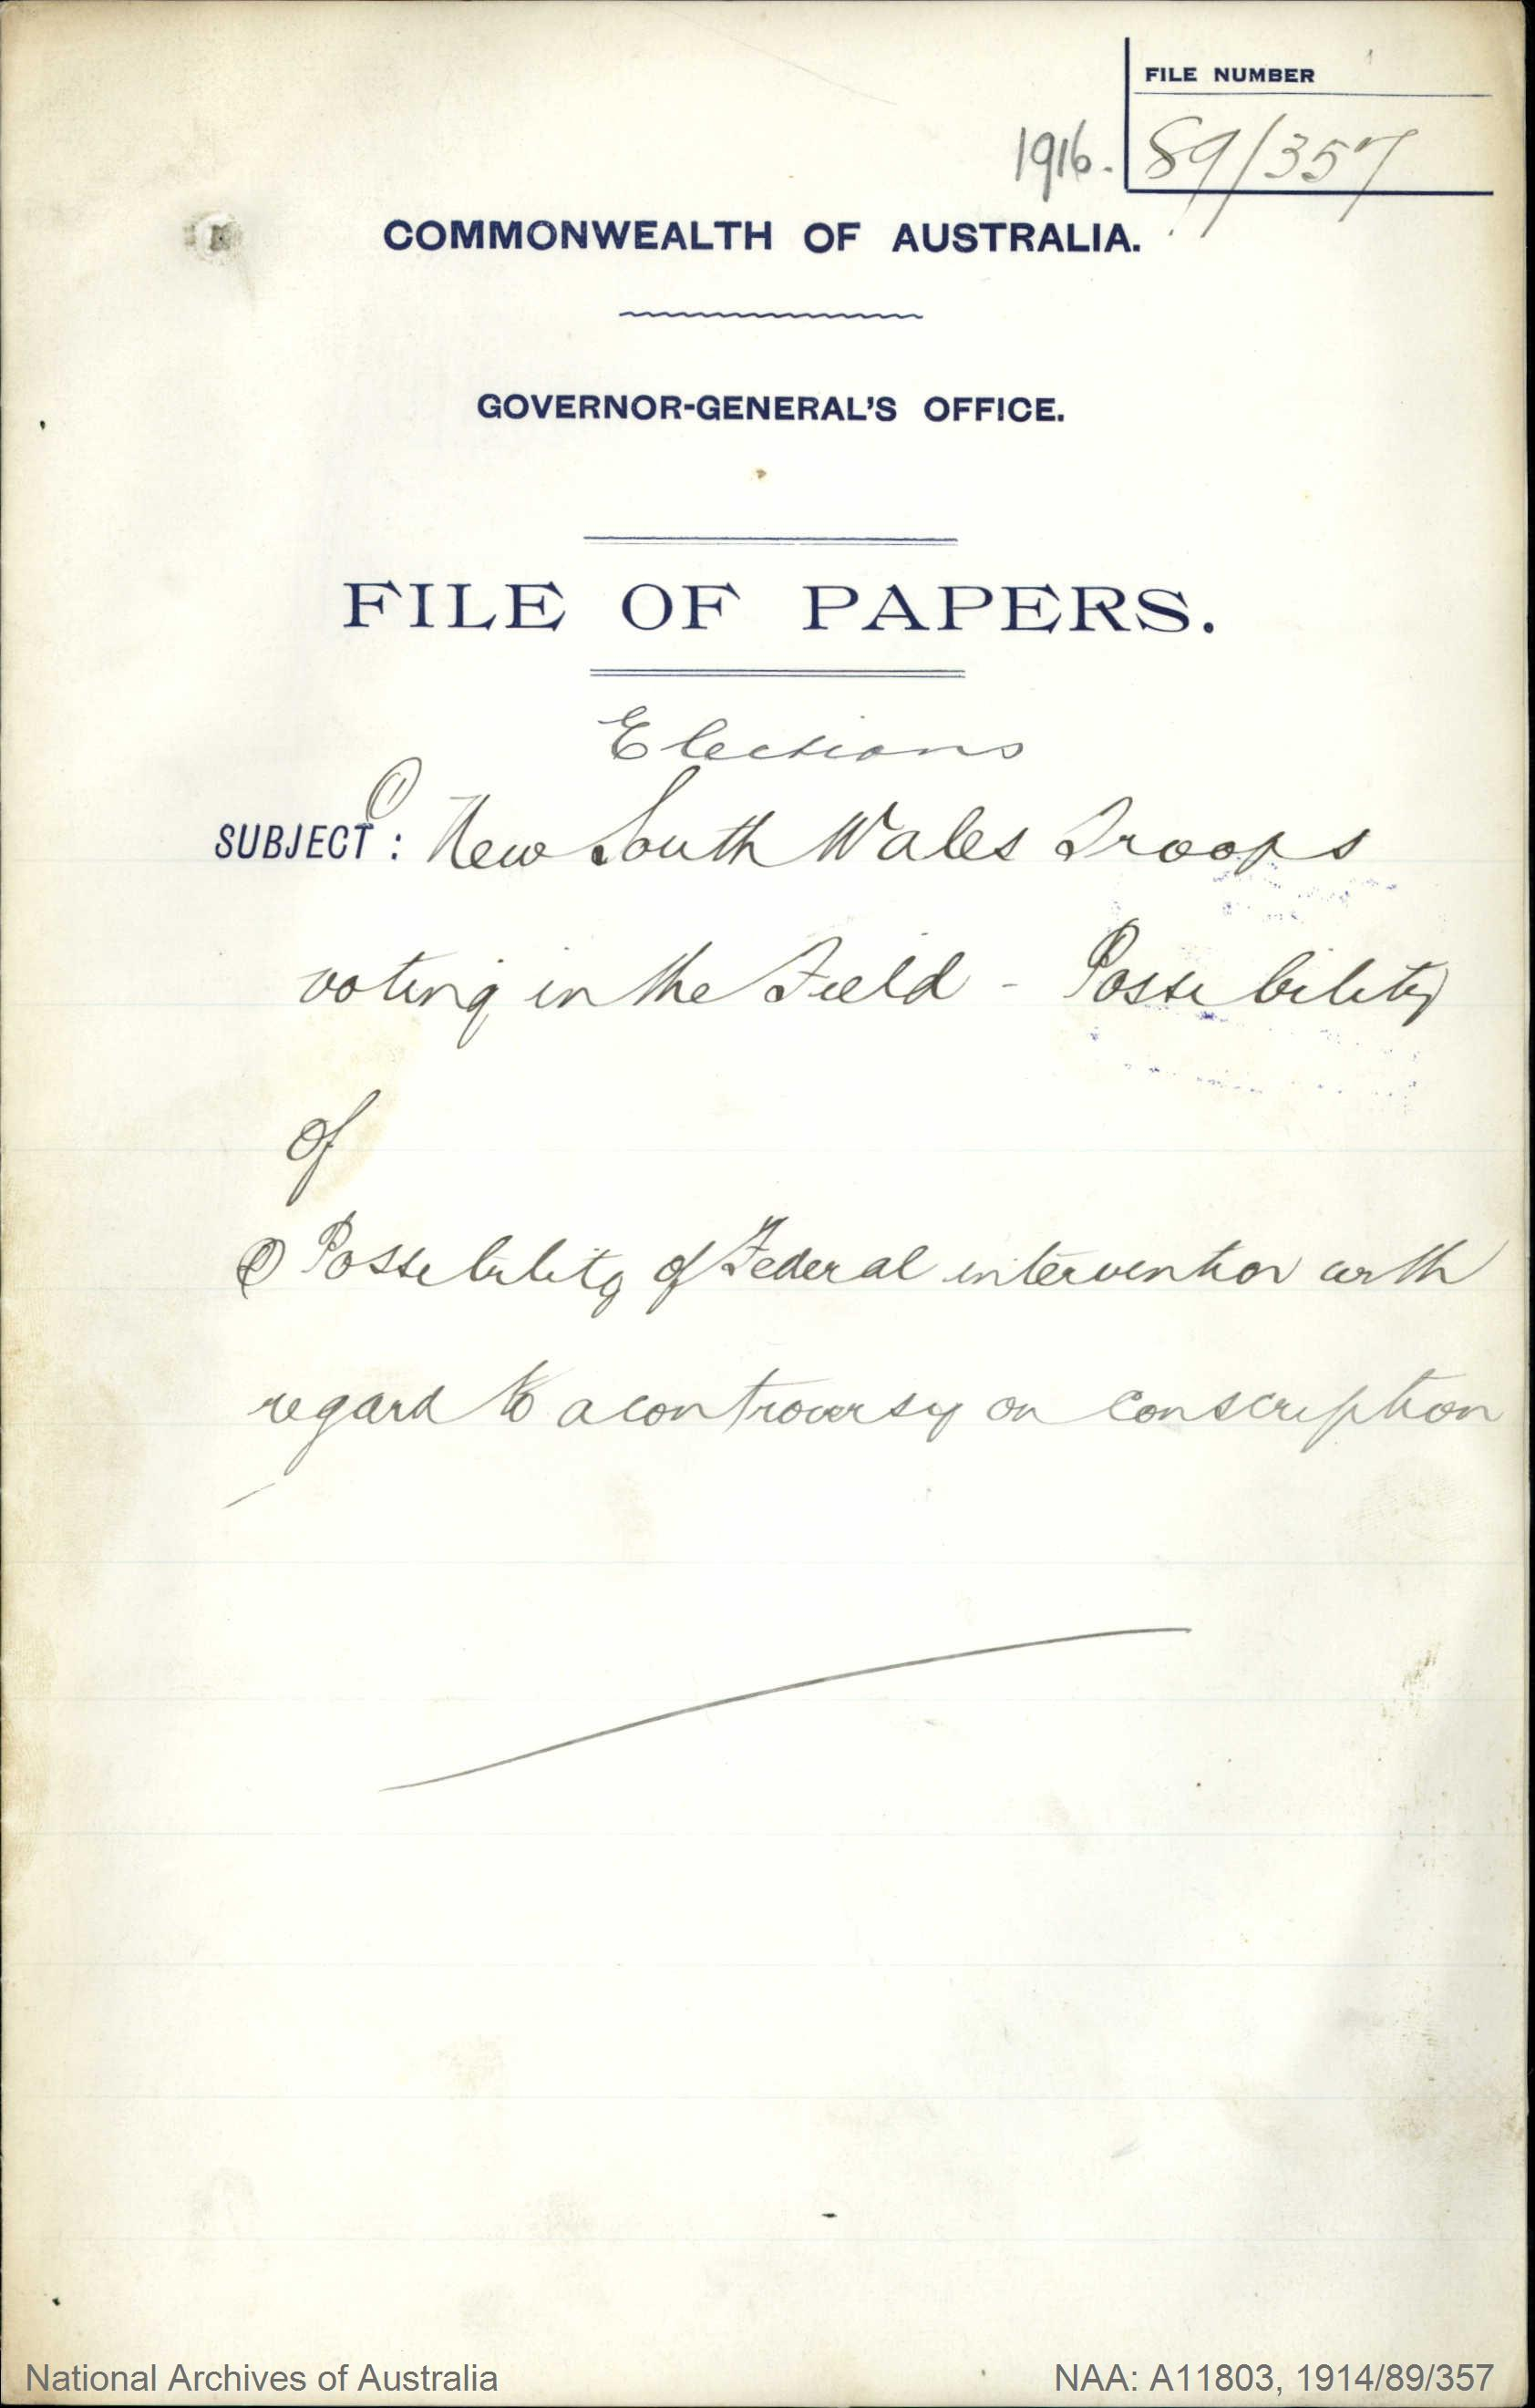 Elections (1) Possibility of New South Wales Troops voting in the field (2) Possibility of Federal intervention with regard to a controversy on conscription